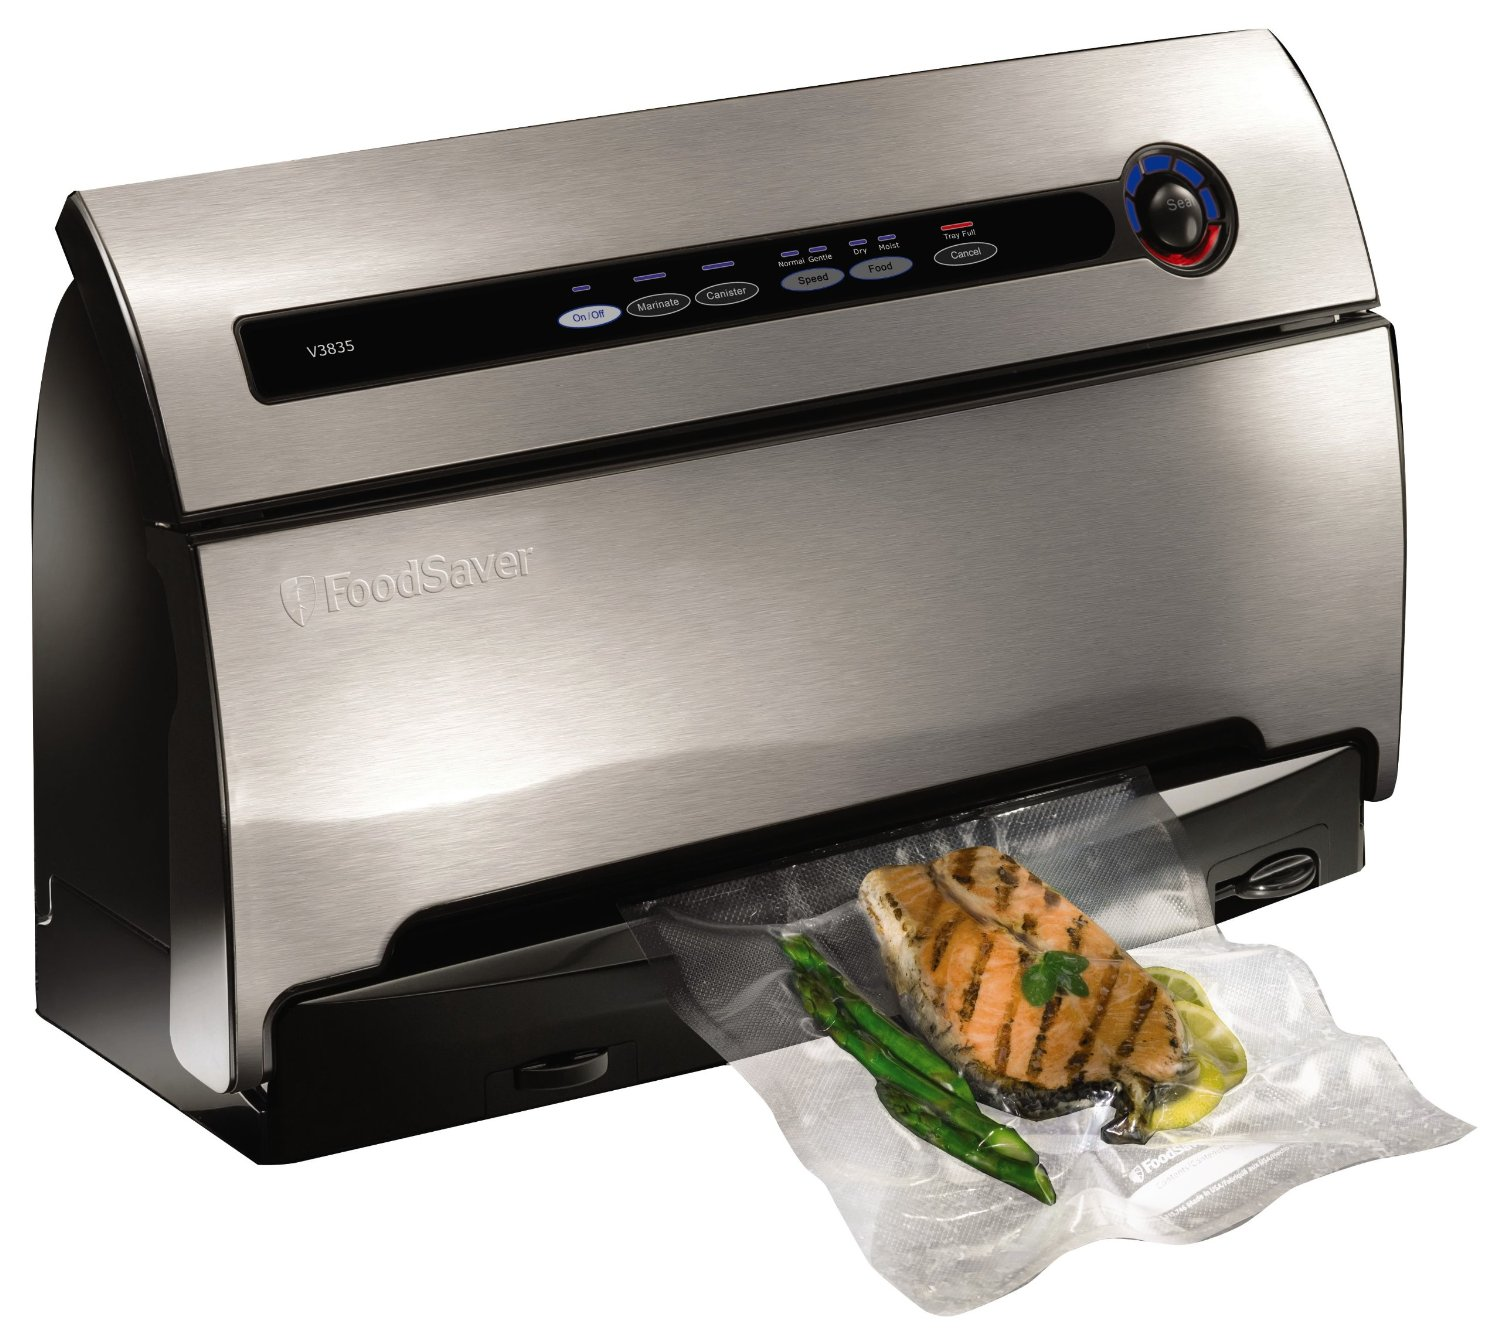 Best Pricing For Food Saver